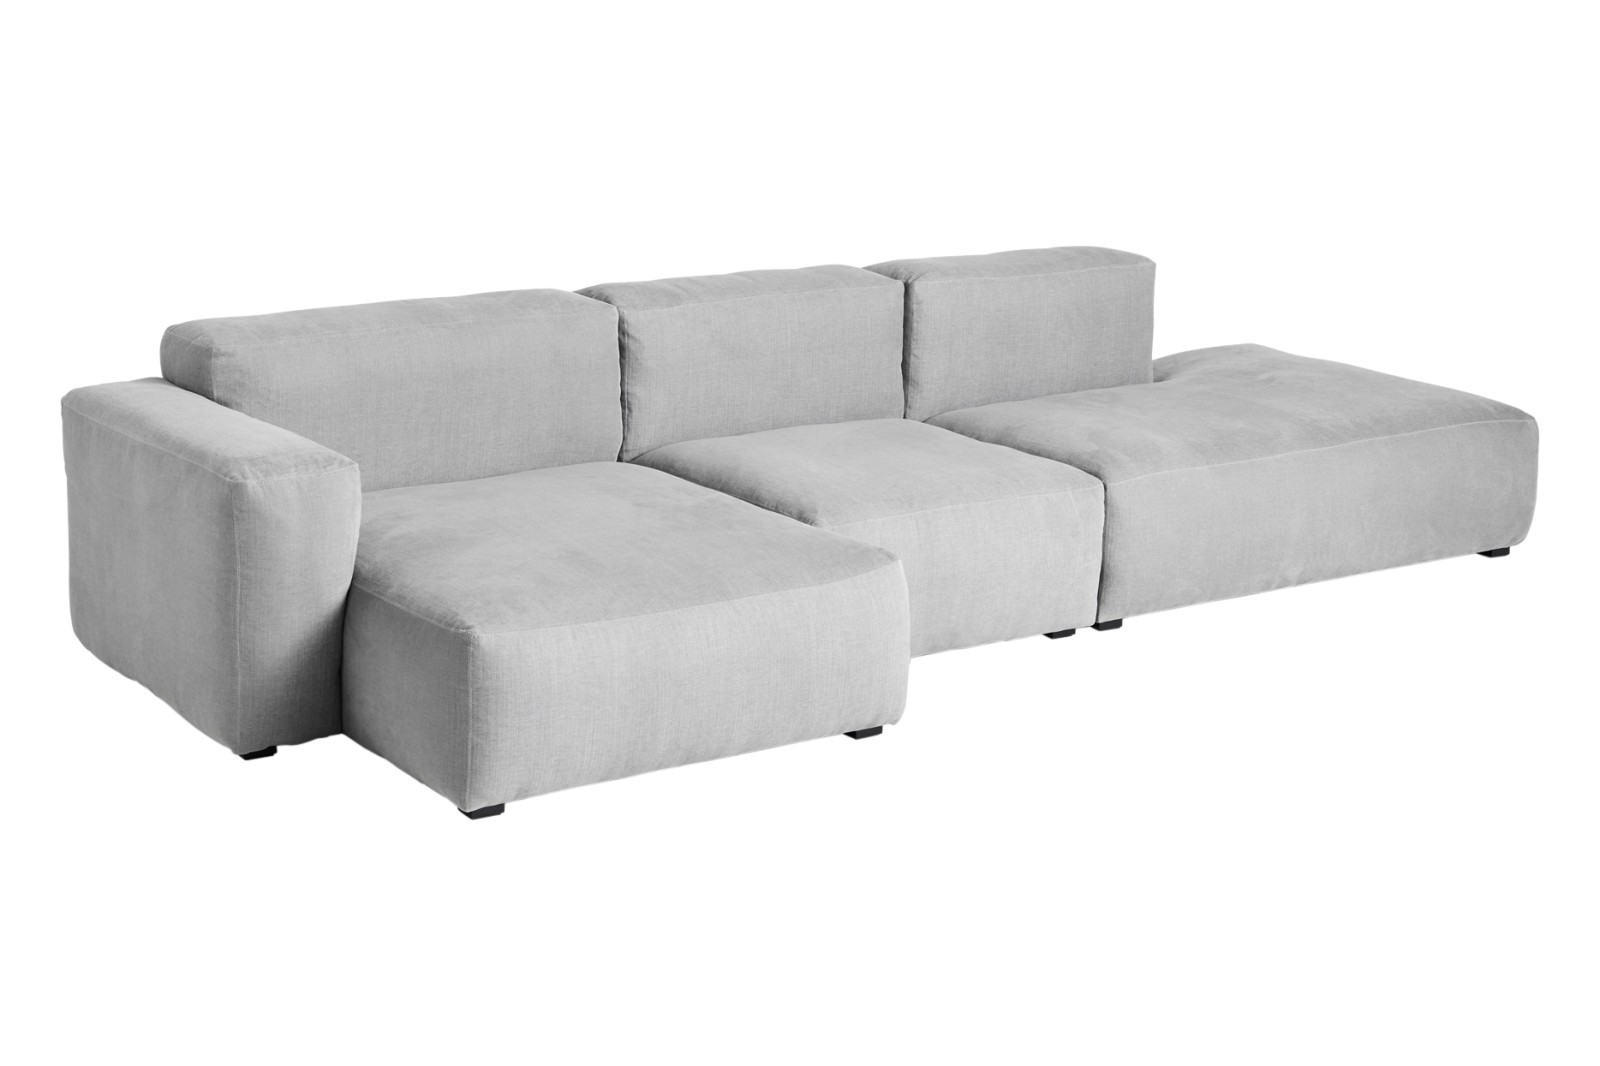 Mags Soft 3 Seater Sofa, Low Armrest - Combination 4 Fabric Group 1, Left